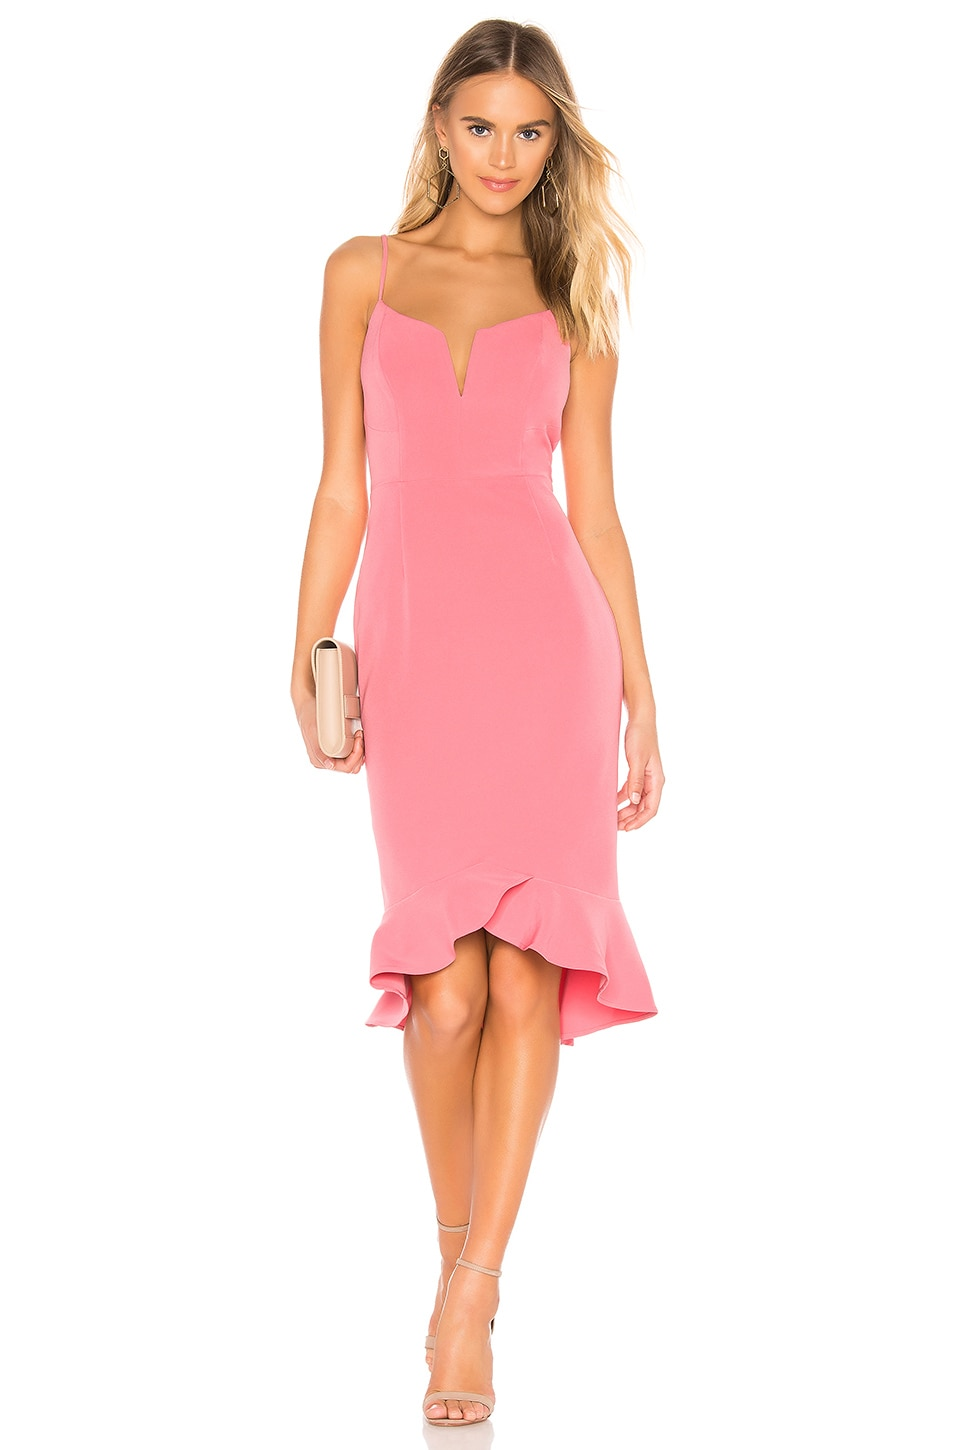 Bardot Kristen Peplum Dress in Melon